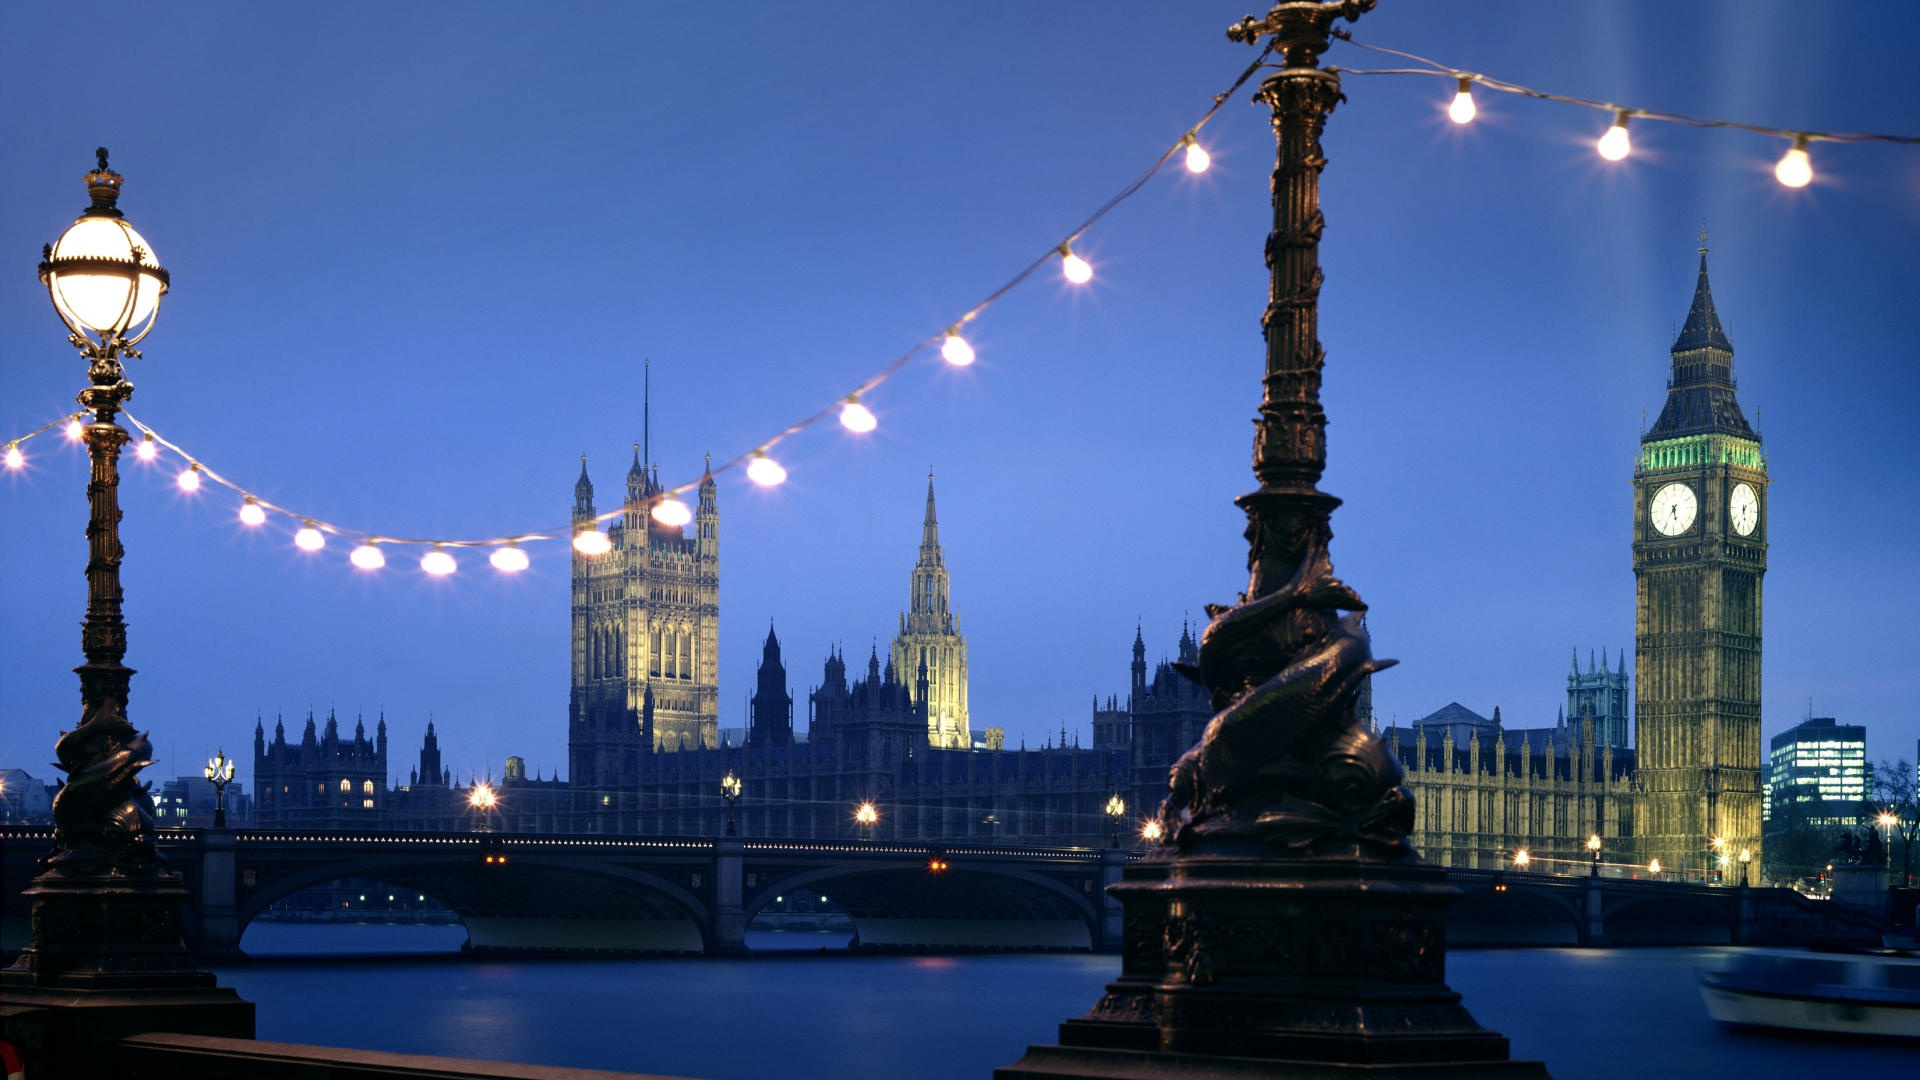 Westminster London - 1920x1080